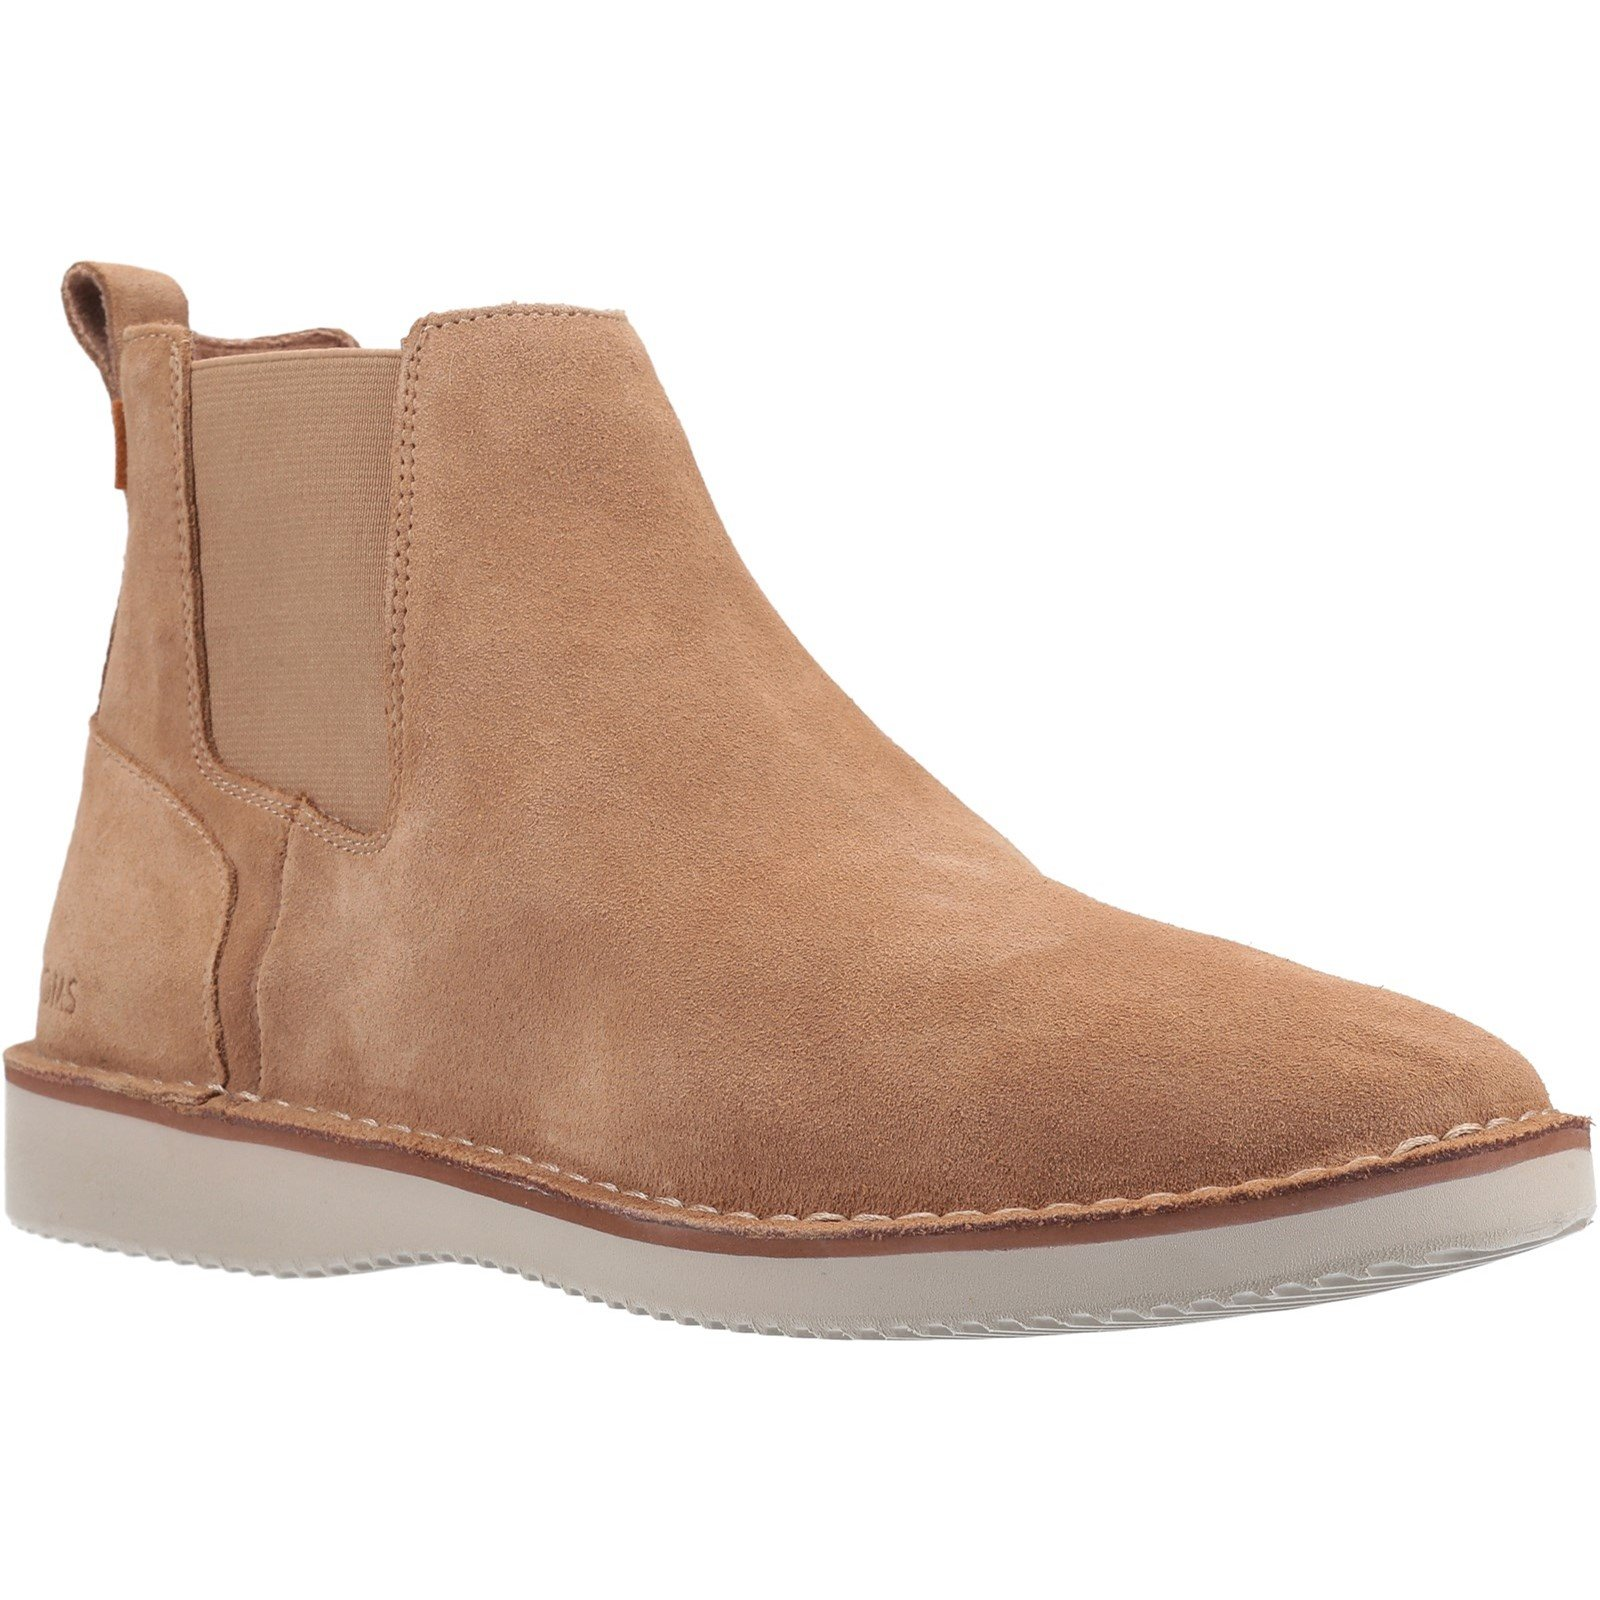 TOMS Men's Skyline Lace Up Boot Toffee 31608 - Toffee 11